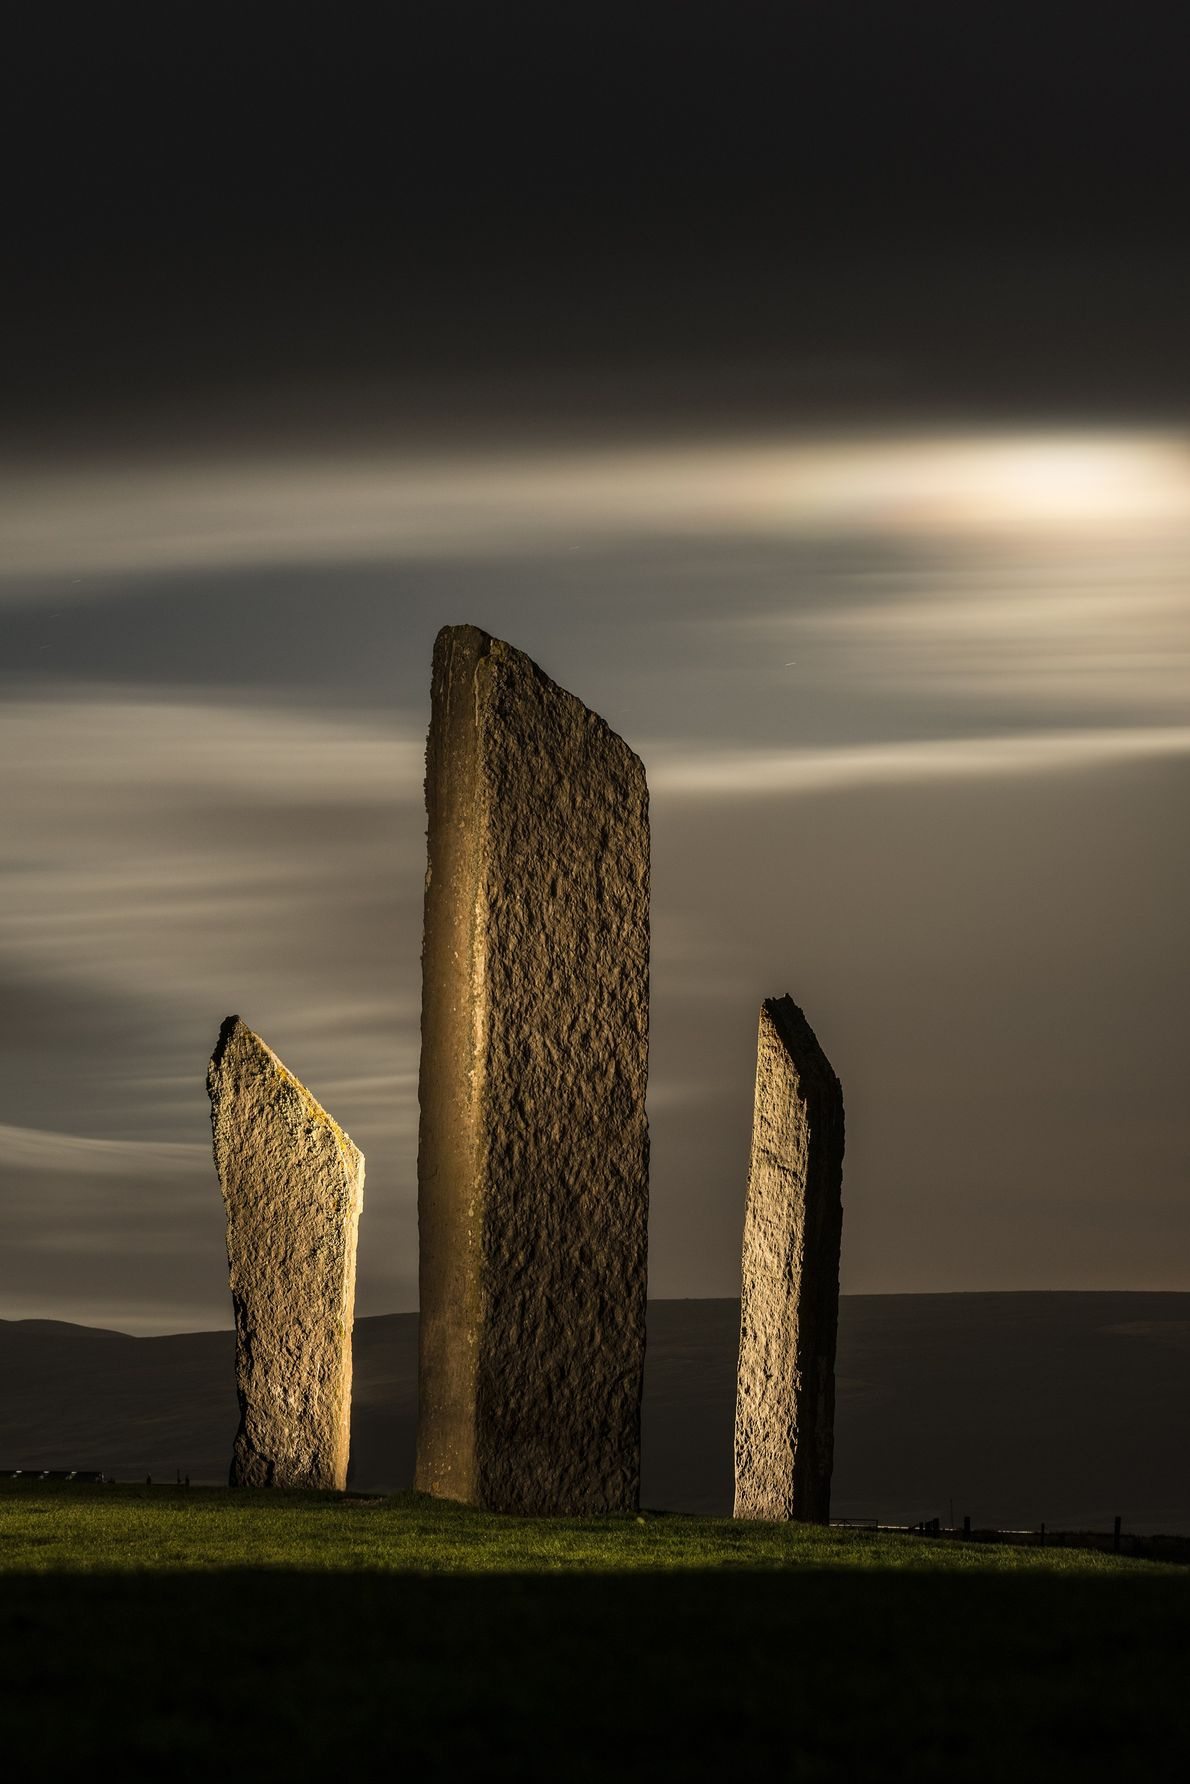 The Stones of Stenness is a Neolithic monument in Orkney, Scotland dating from around 3000 BC. ...